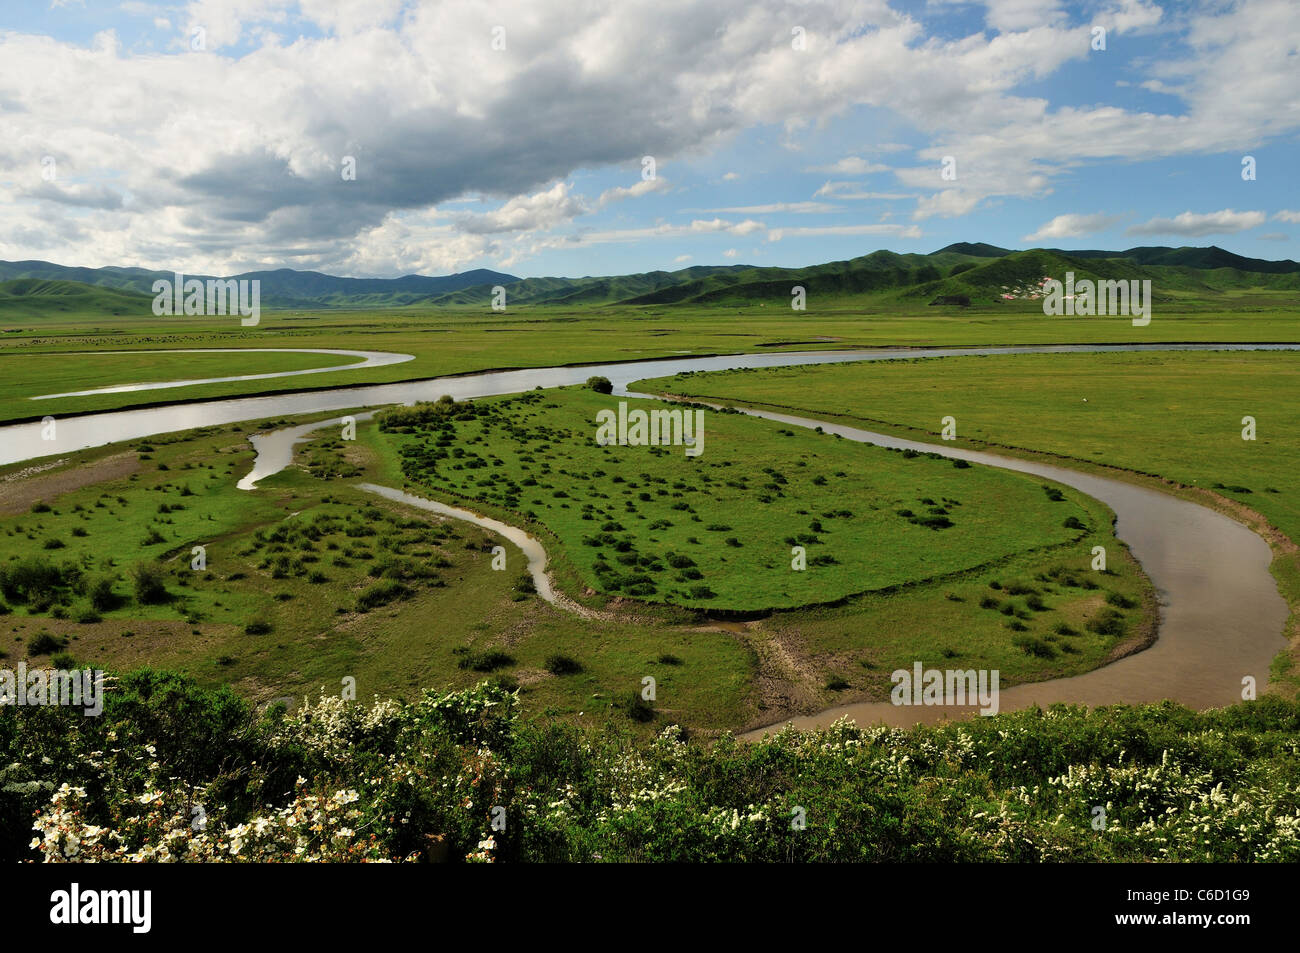 A oxbow lake along the meandering river channel. Hongyuen, Sichuan, China. - Stock Image